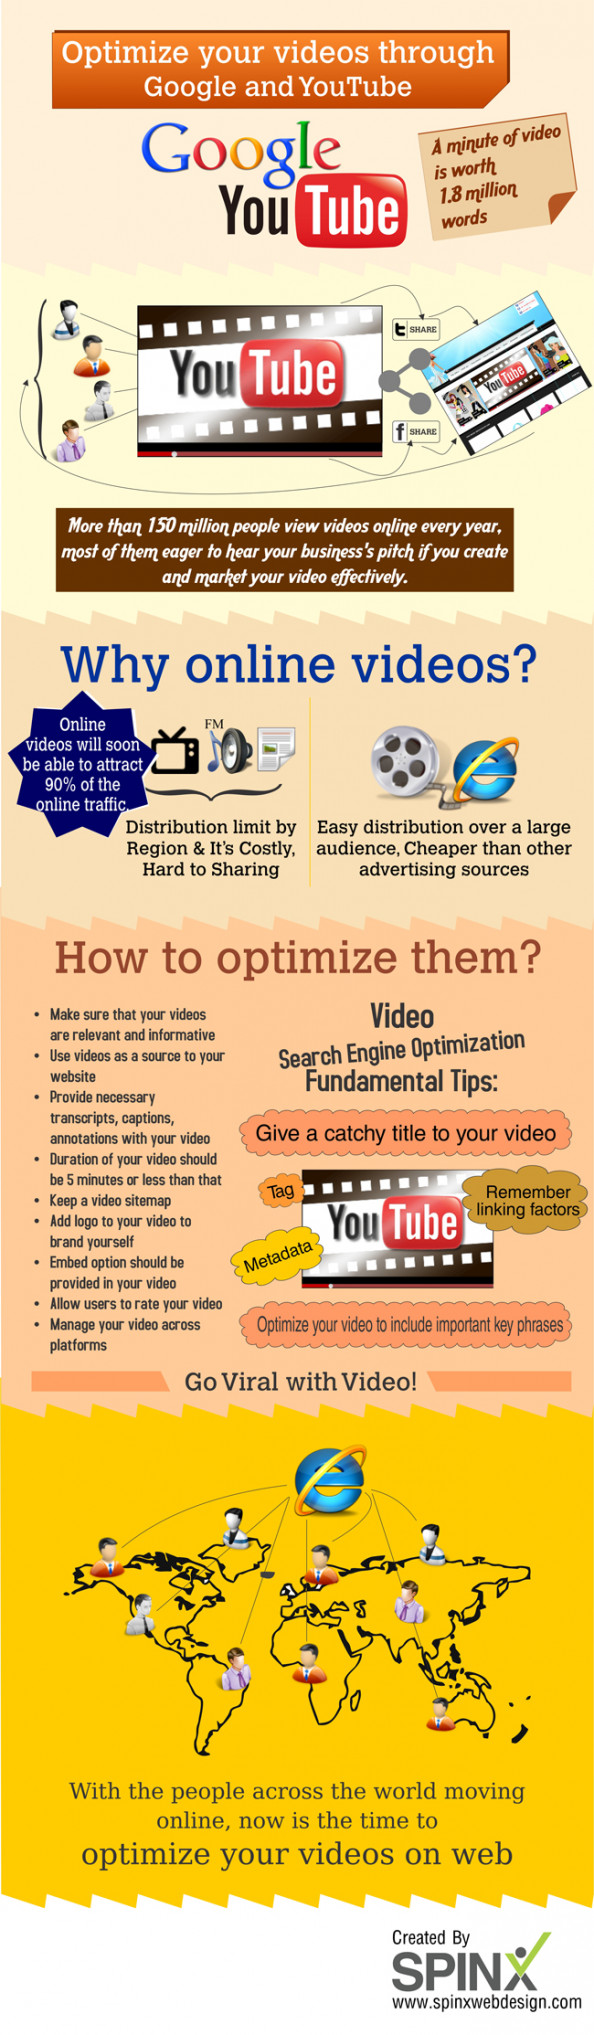 Online Video Marketing through Google and YouTube Infographic